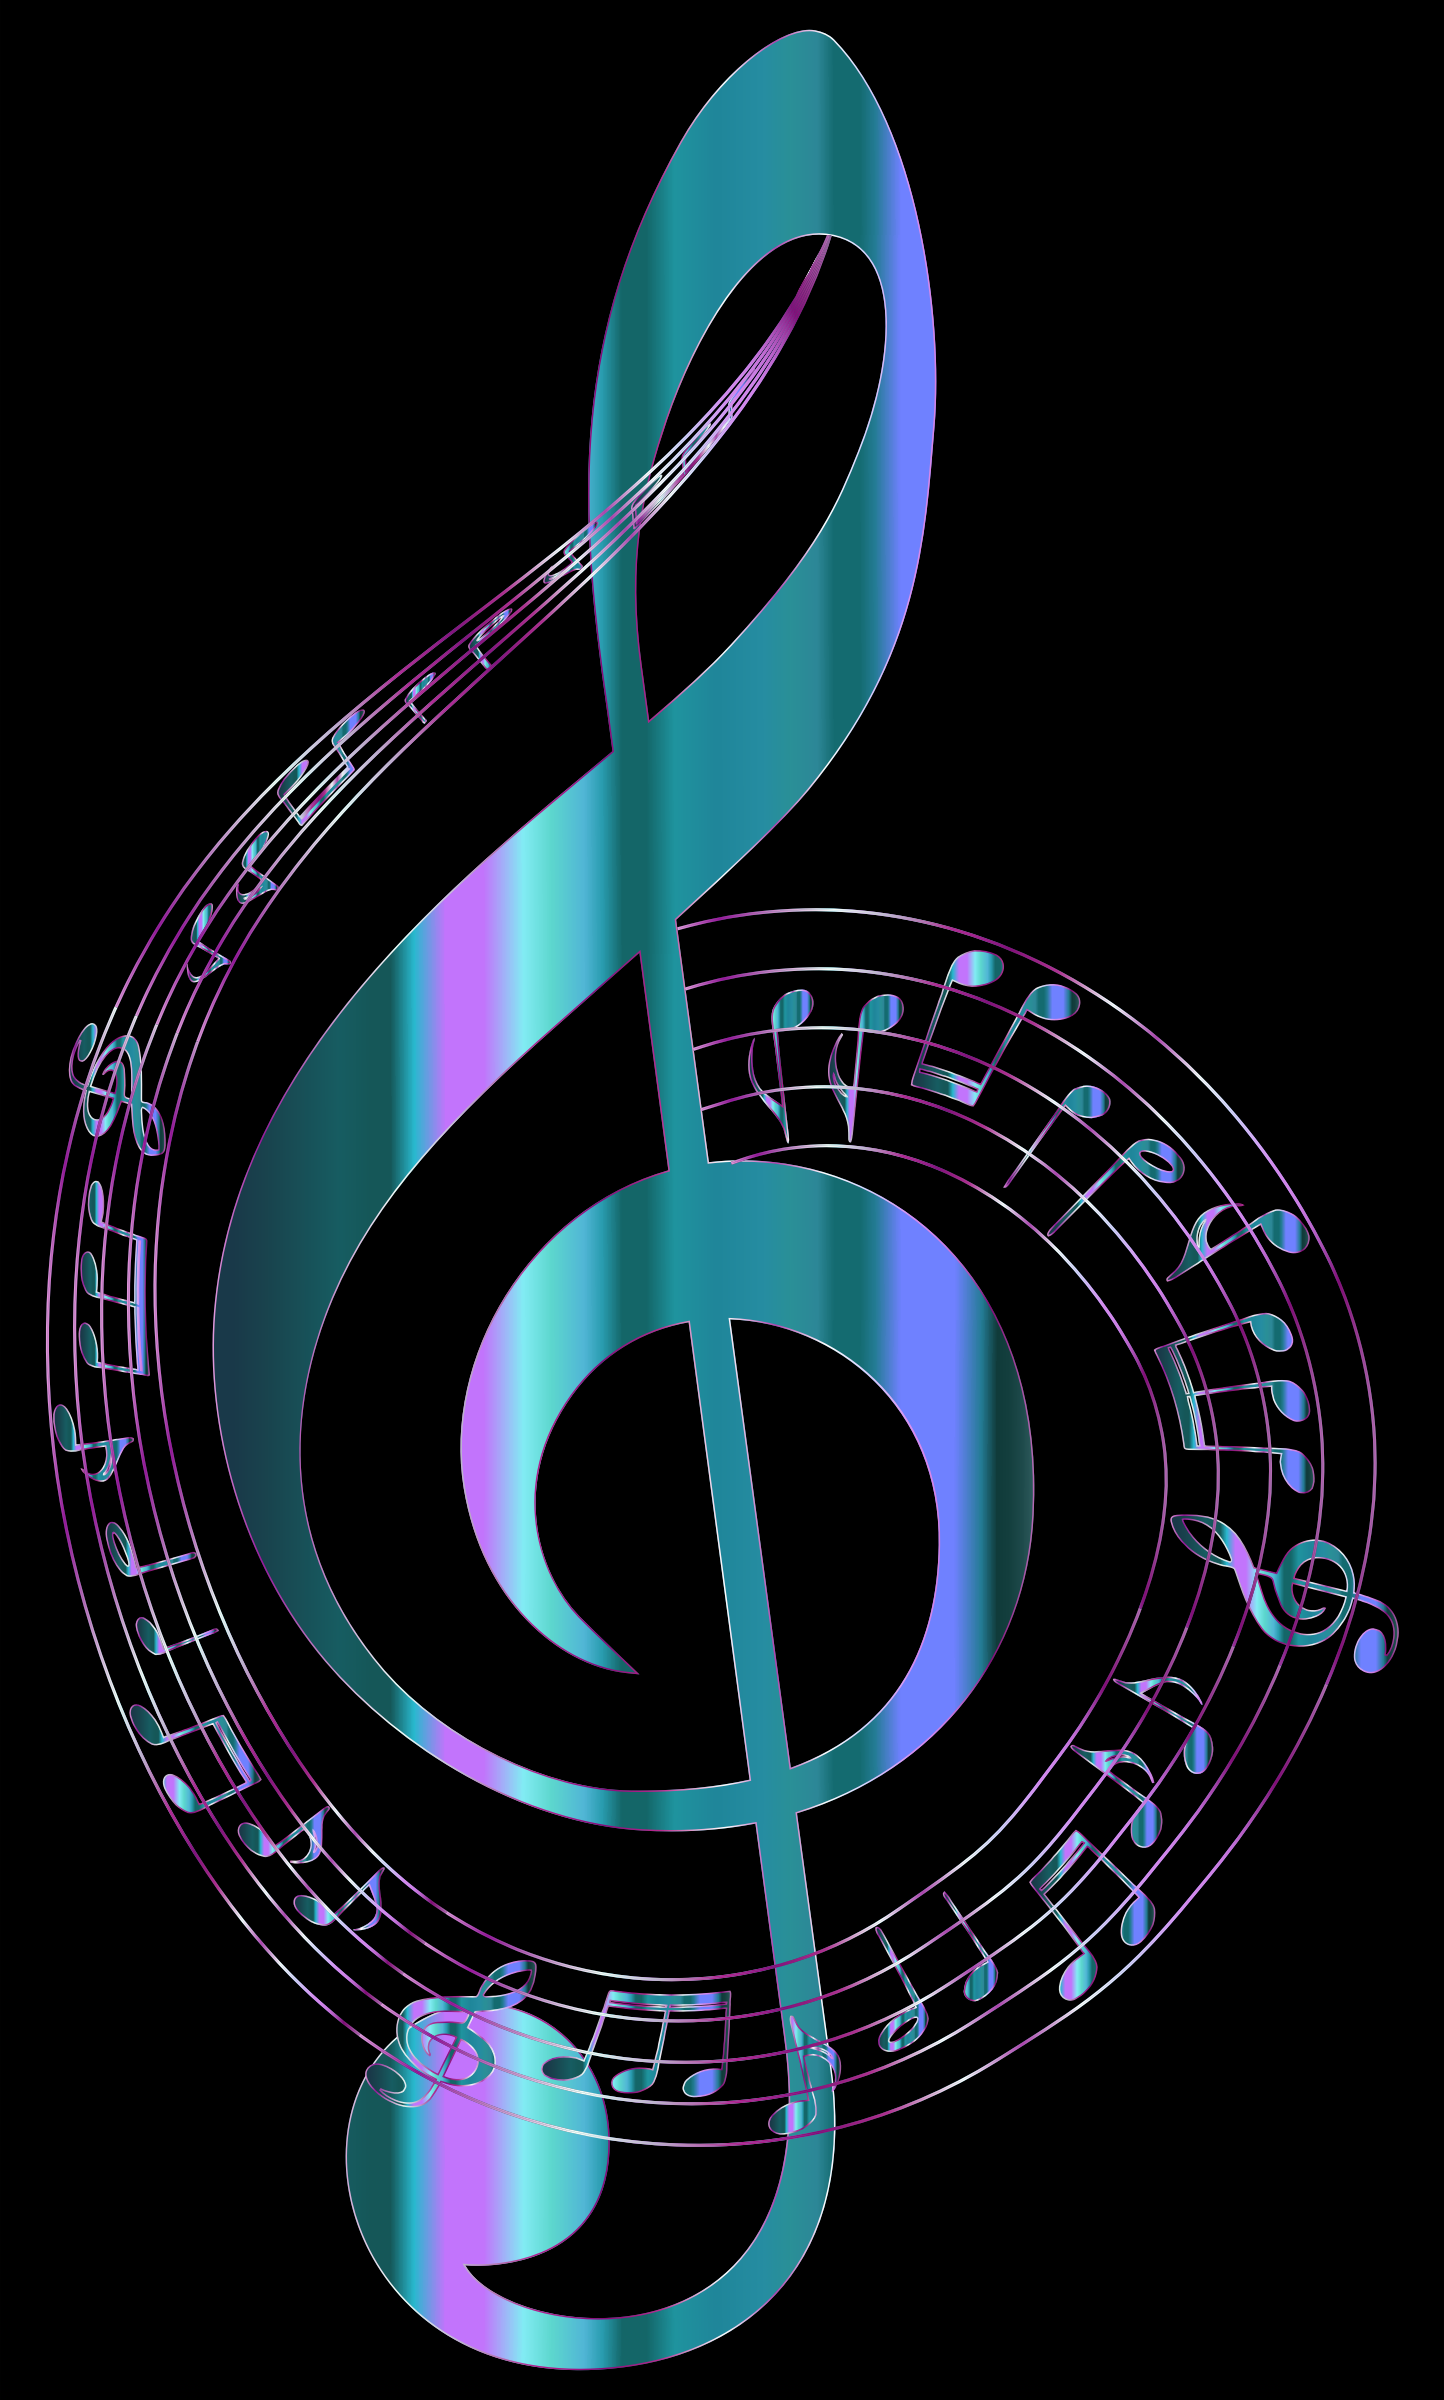 Turquoise Musical Notes Typography by GDJ